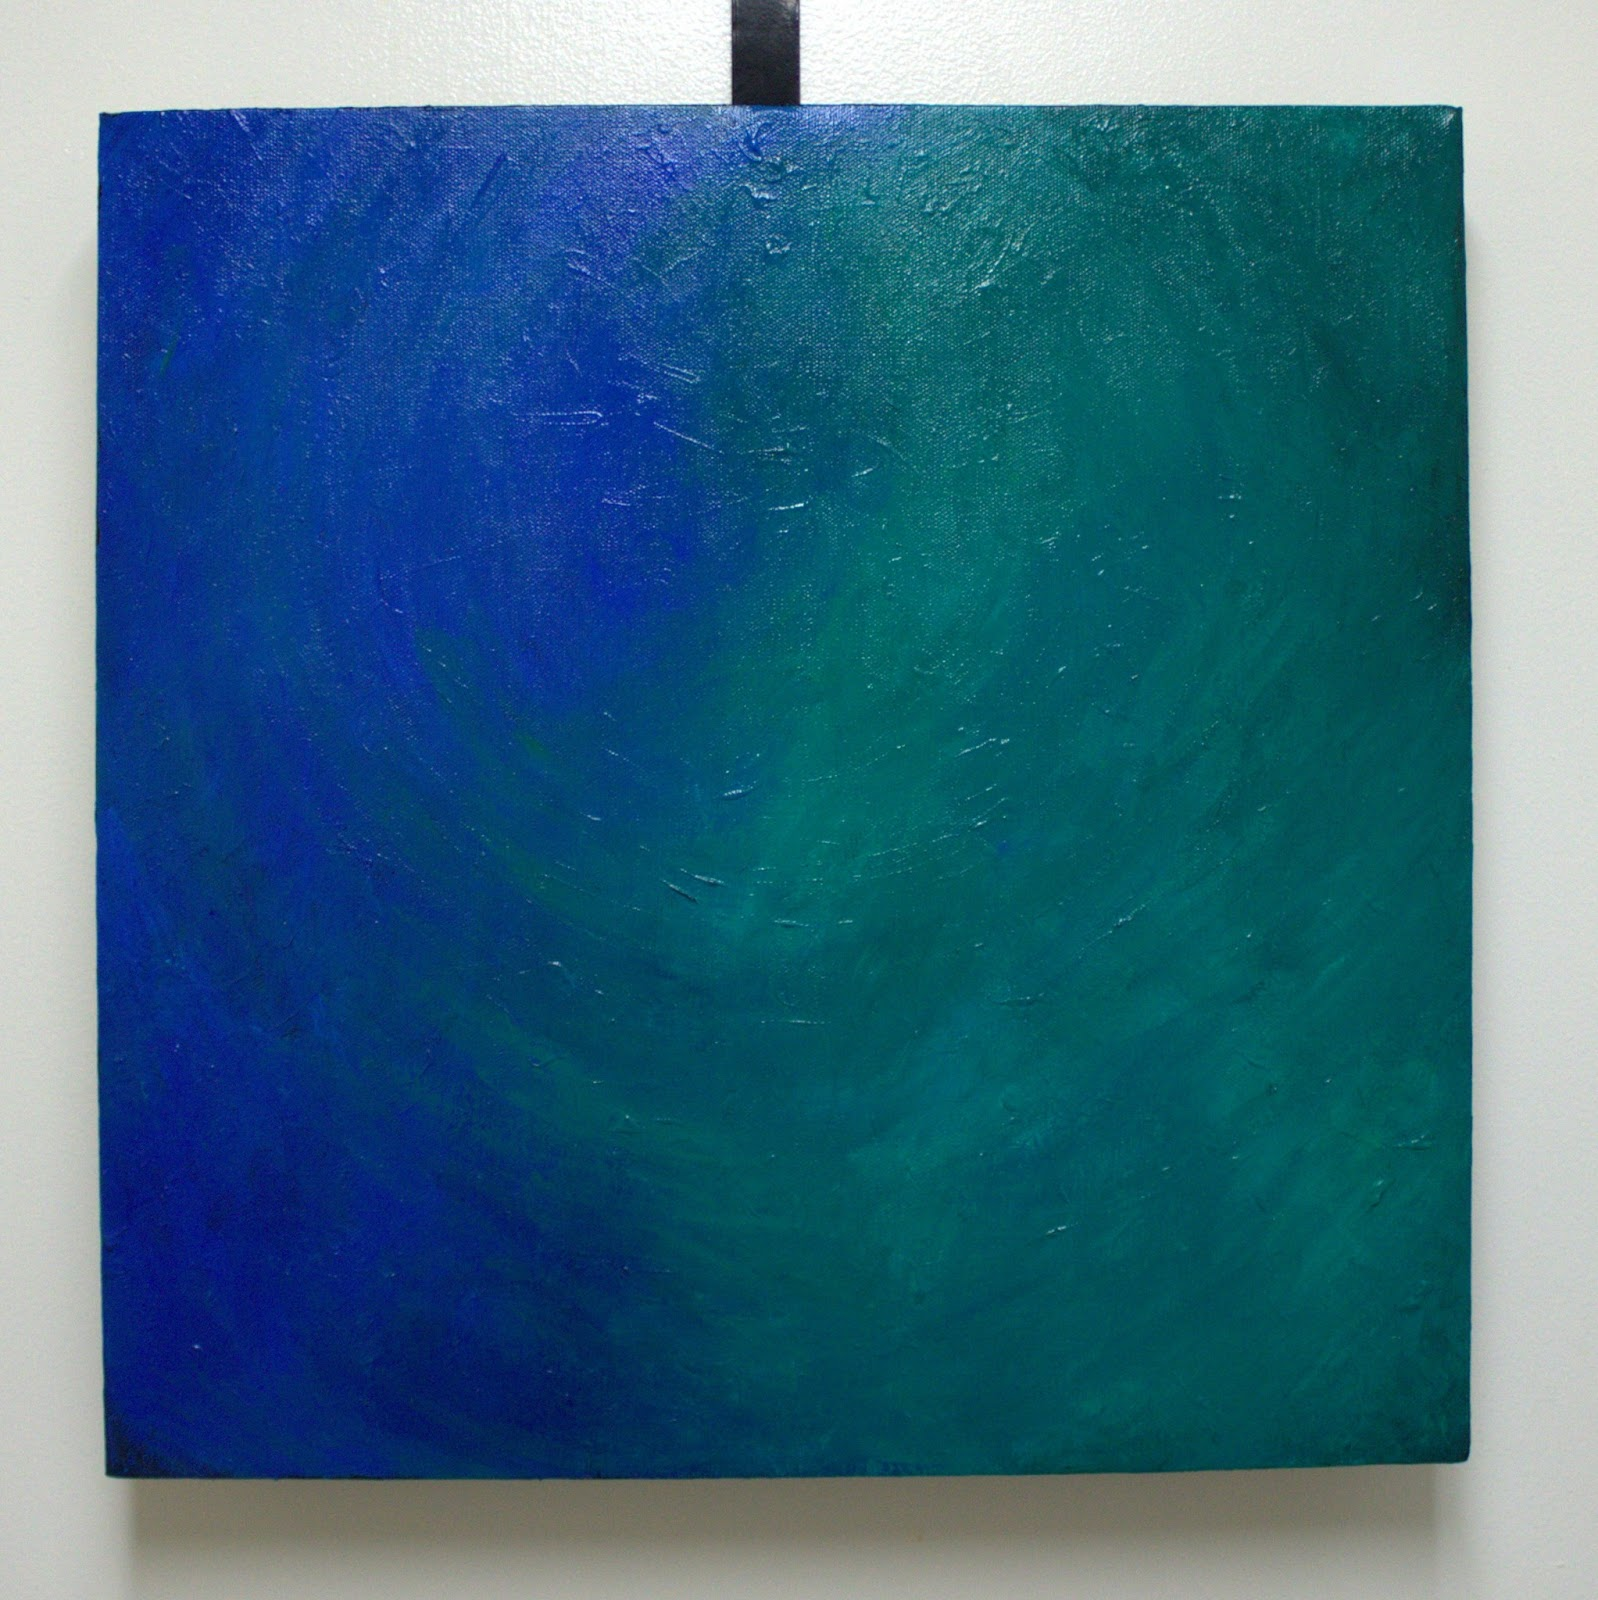 Heavily Edited | Blue-Green Acrylic Painting on Canvas